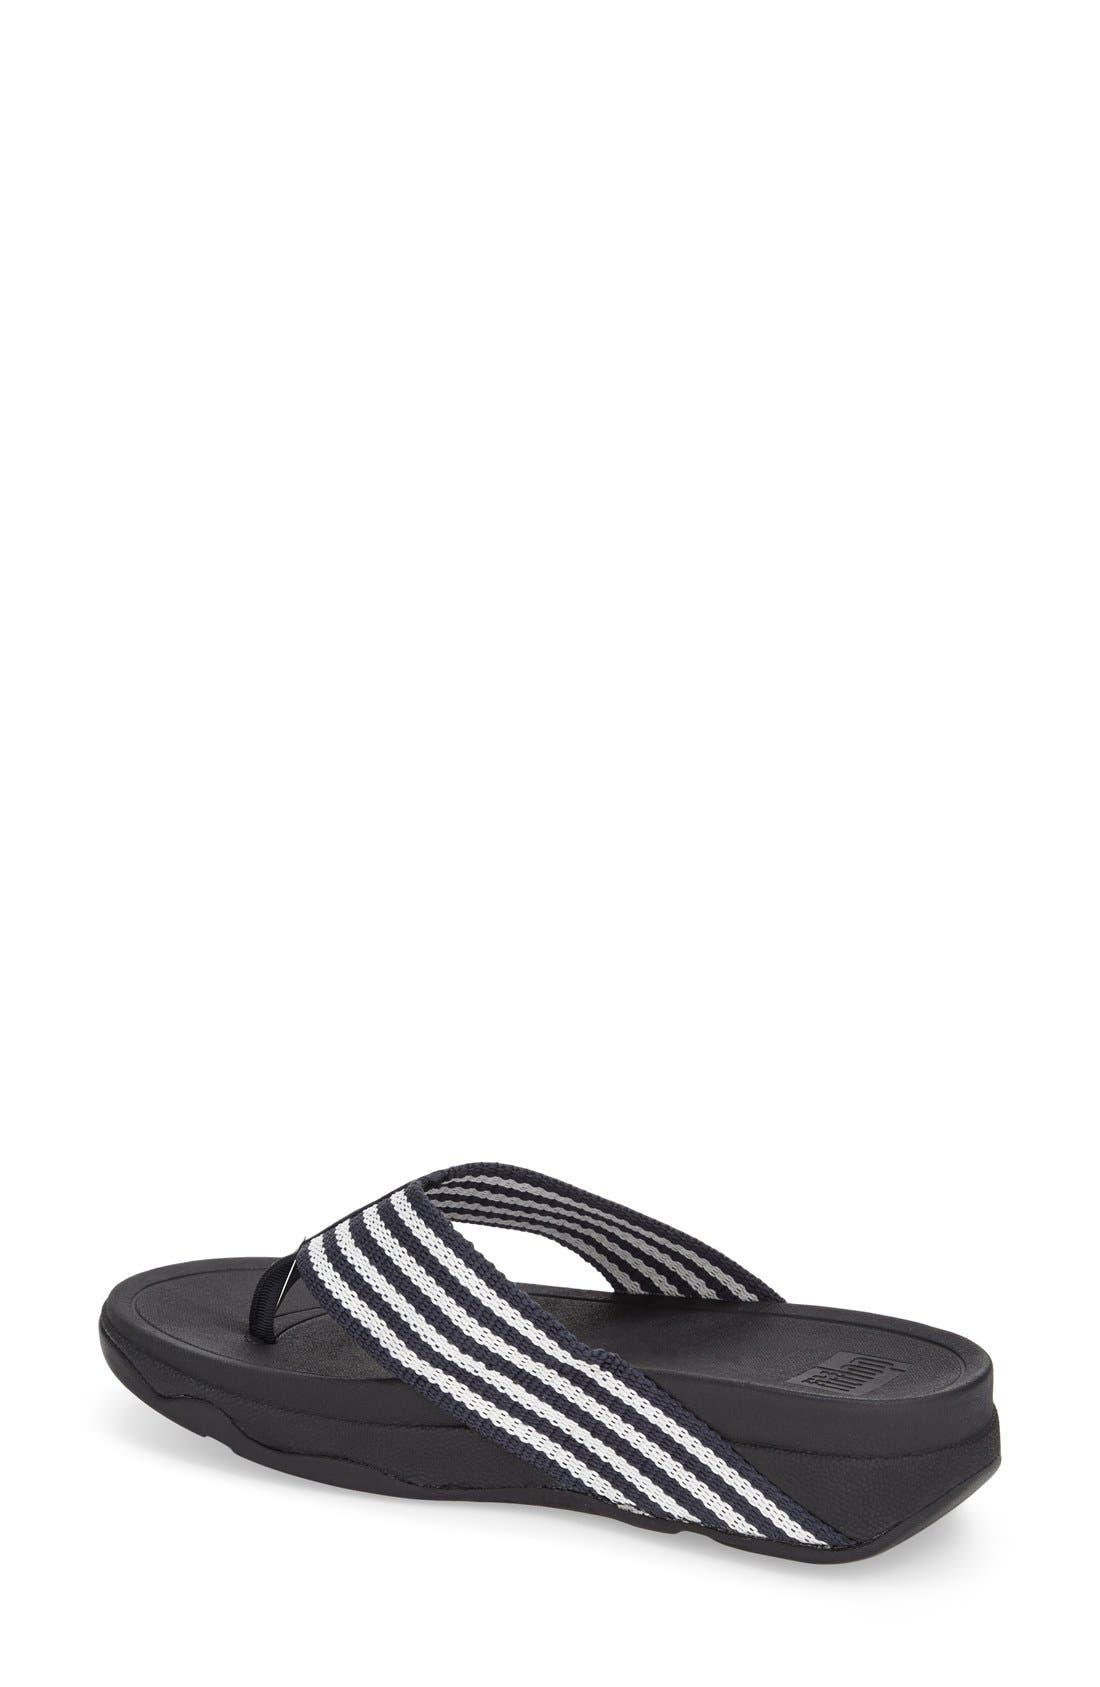 Alternate Image 2  - FitFlop™ 'Surfa' Thong Sandal (Women)